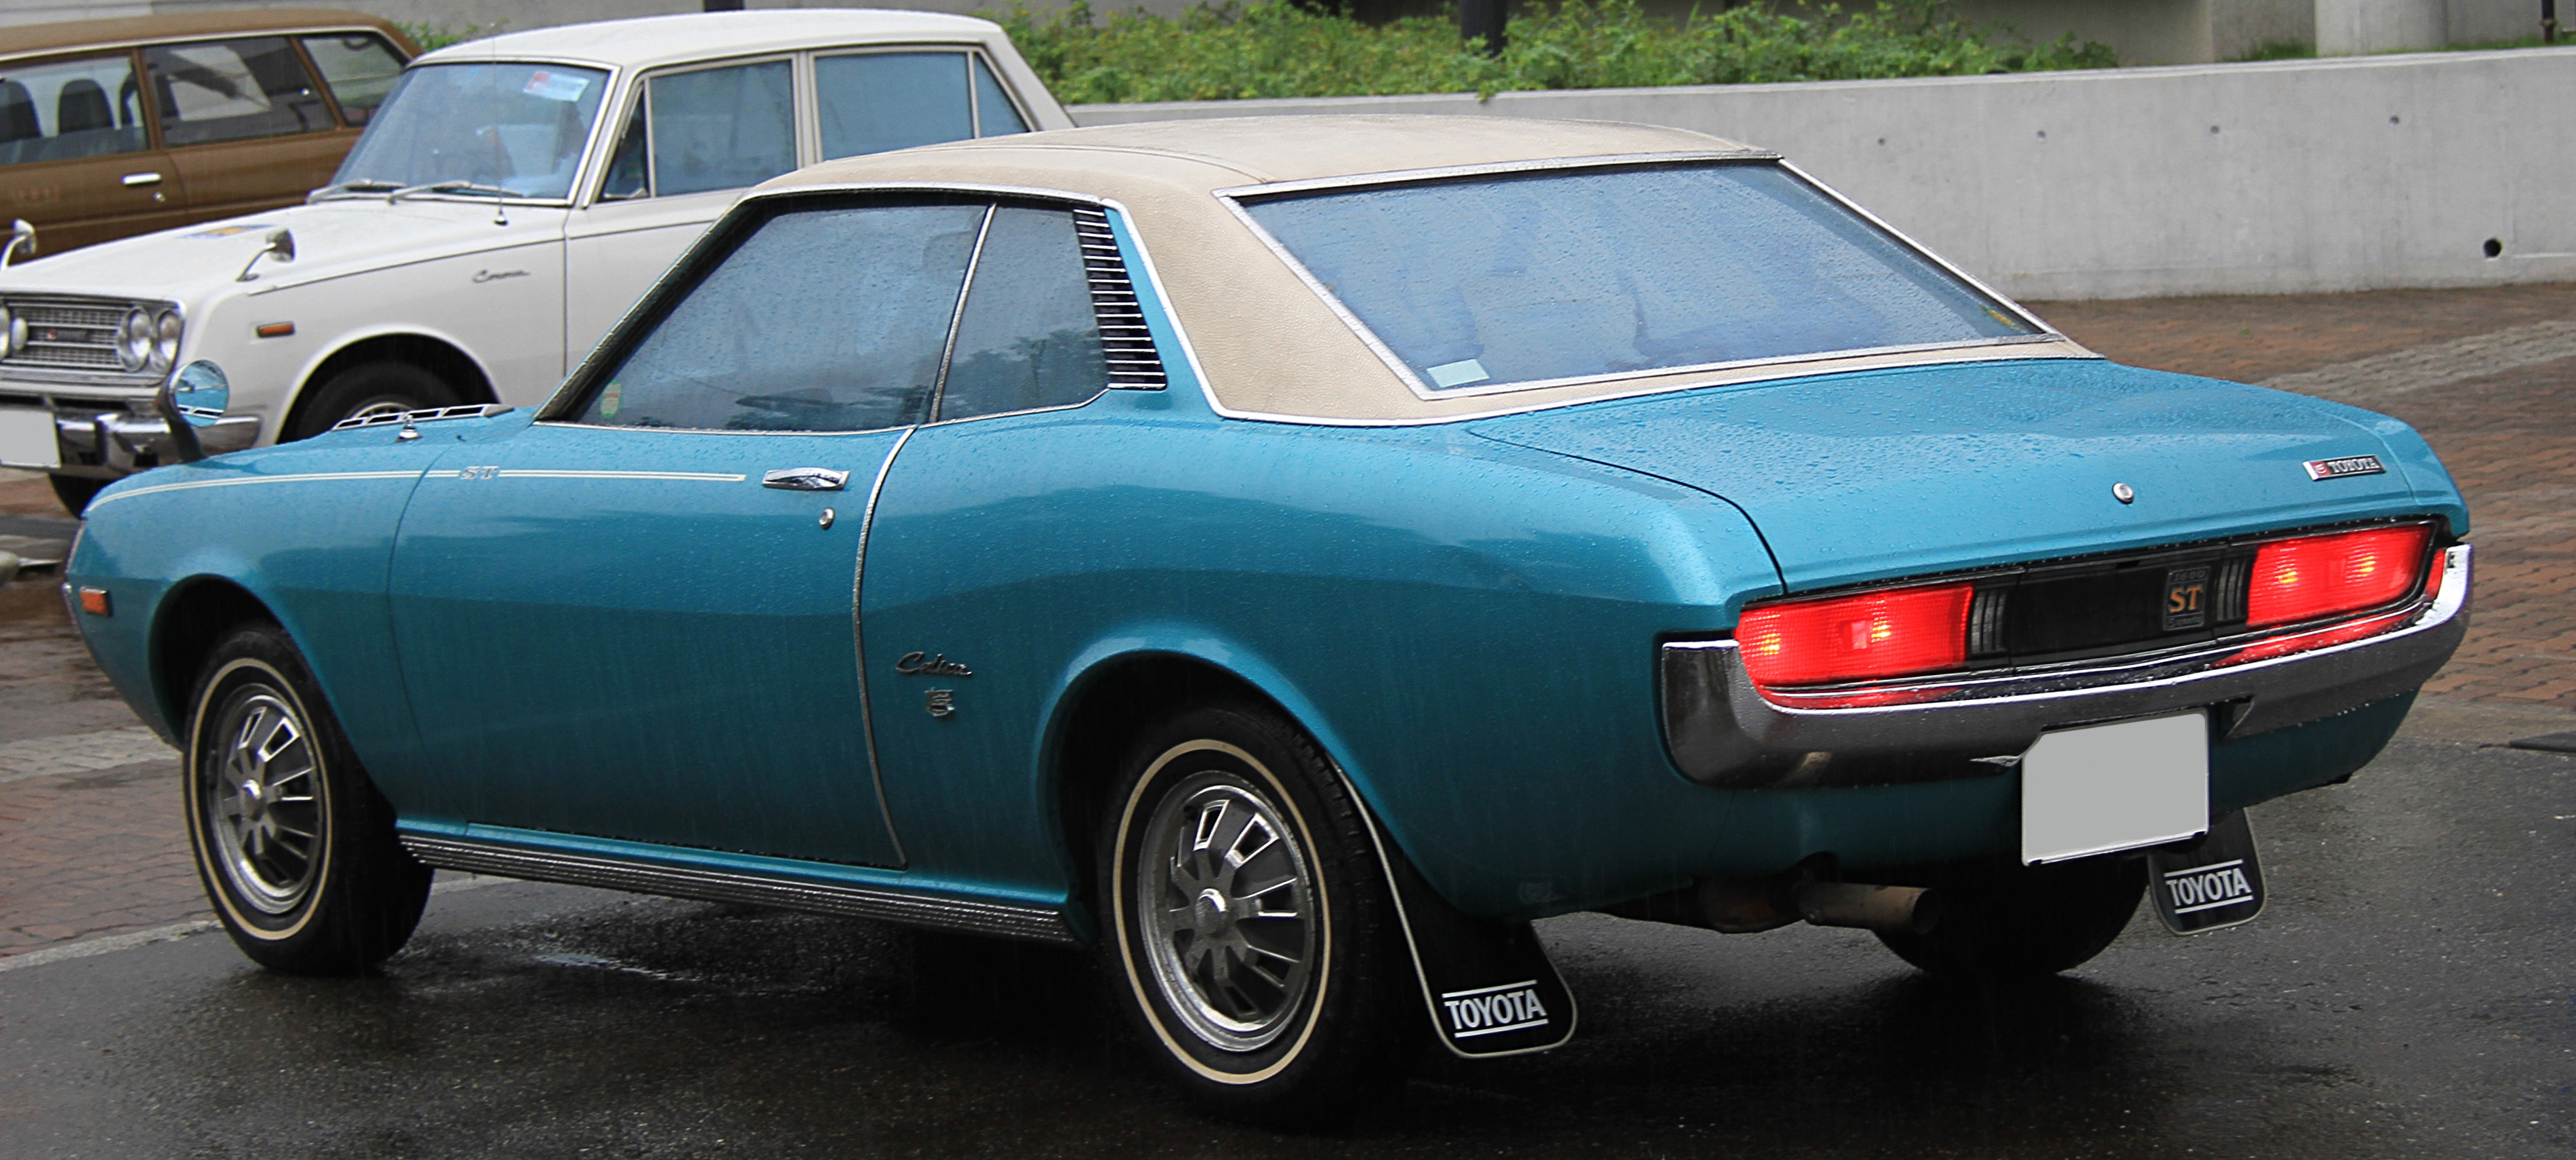 File Toyota Celica 1600st Ta22 Rear Jpg Wikimedia Commons